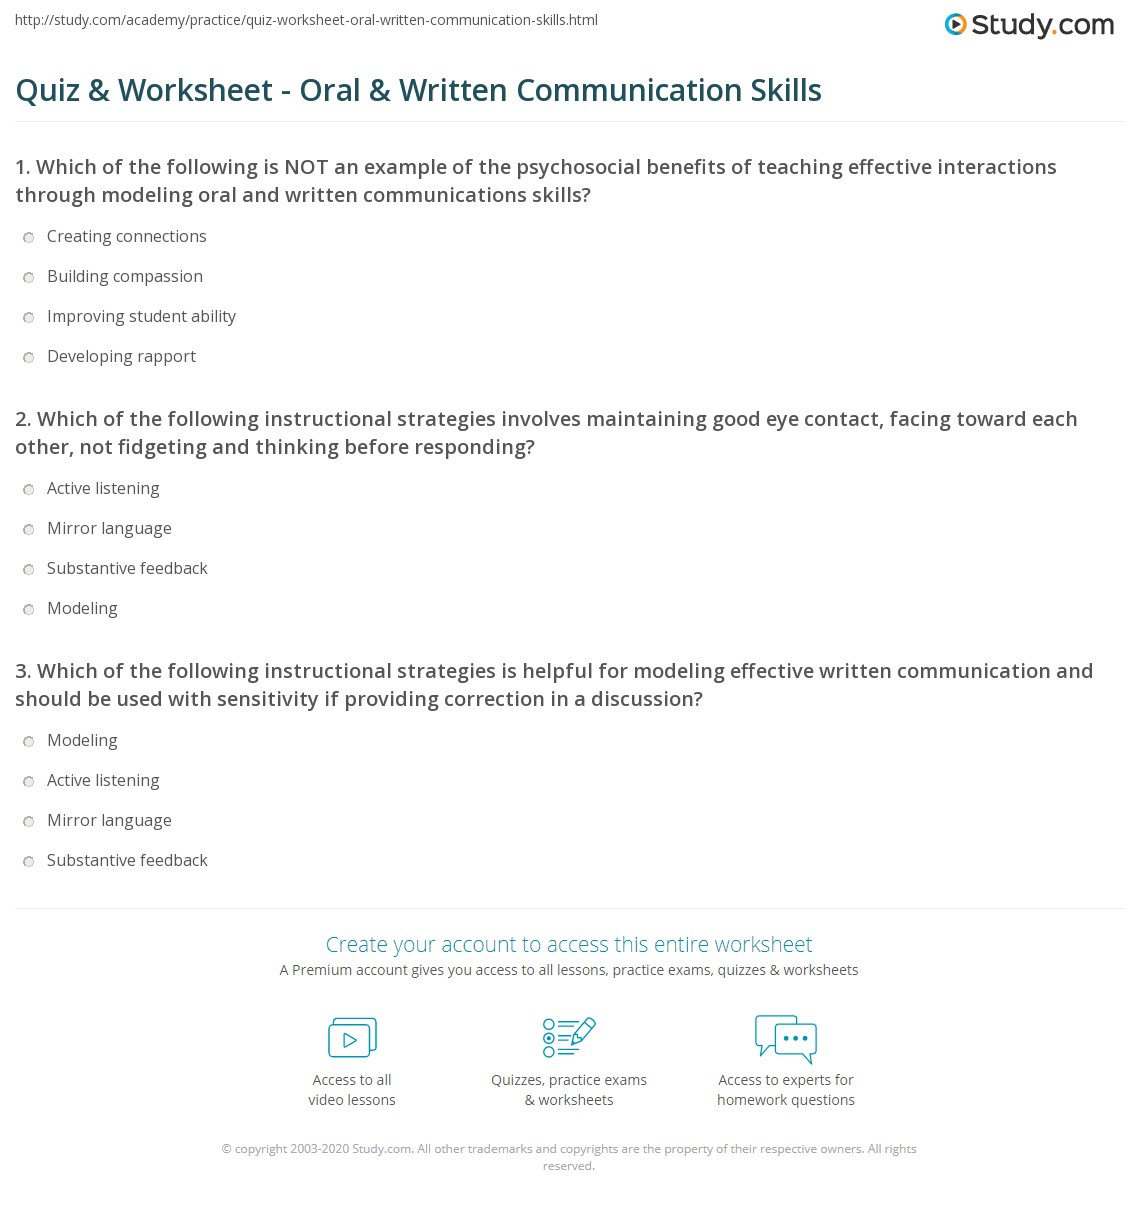 quiz worksheet oral written communication skills com print modeling oral written communication skills in the classroom worksheet